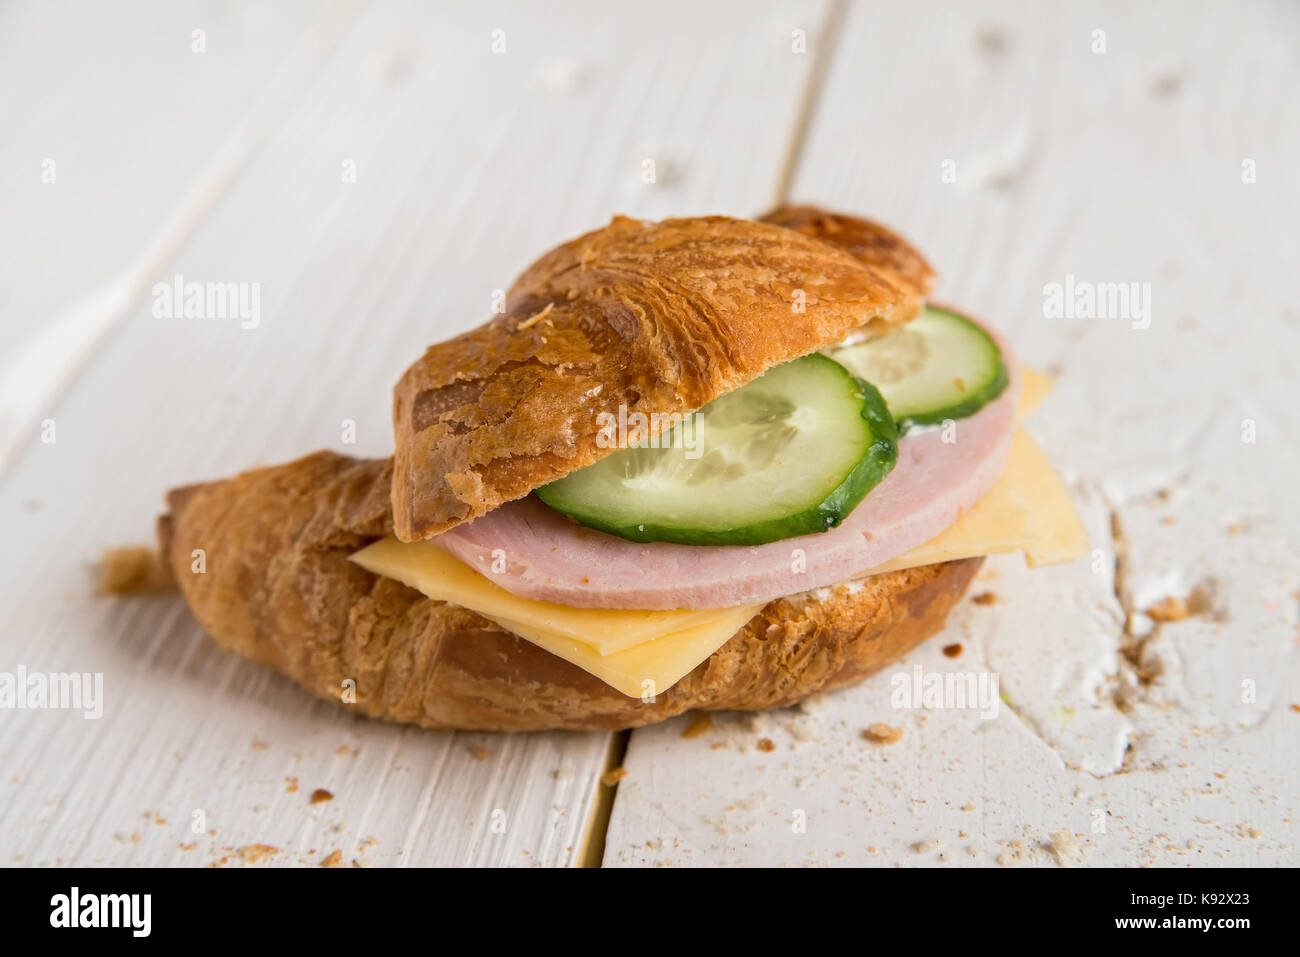 Croissant with ham, cheese and cucumber - Stock Image